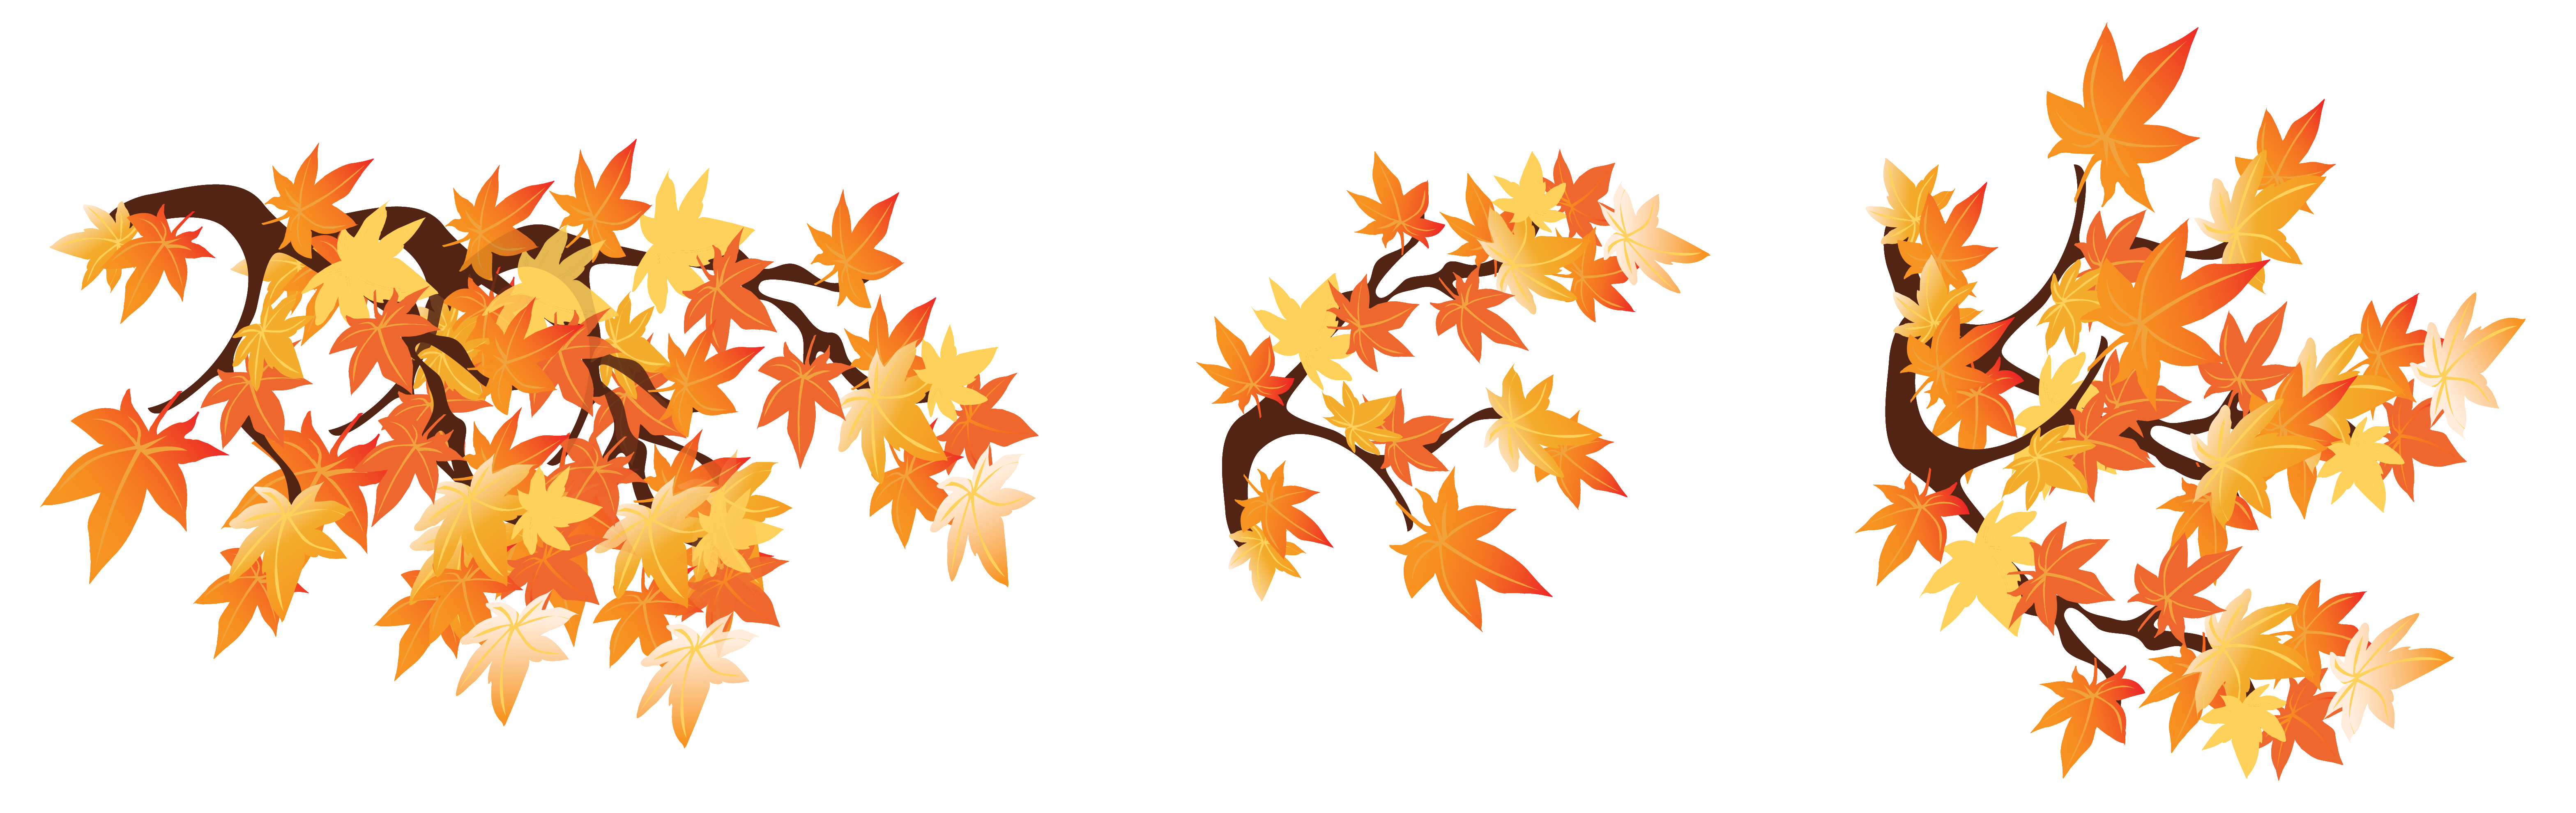 Leaves falling gif png. Autumn branches with clipart